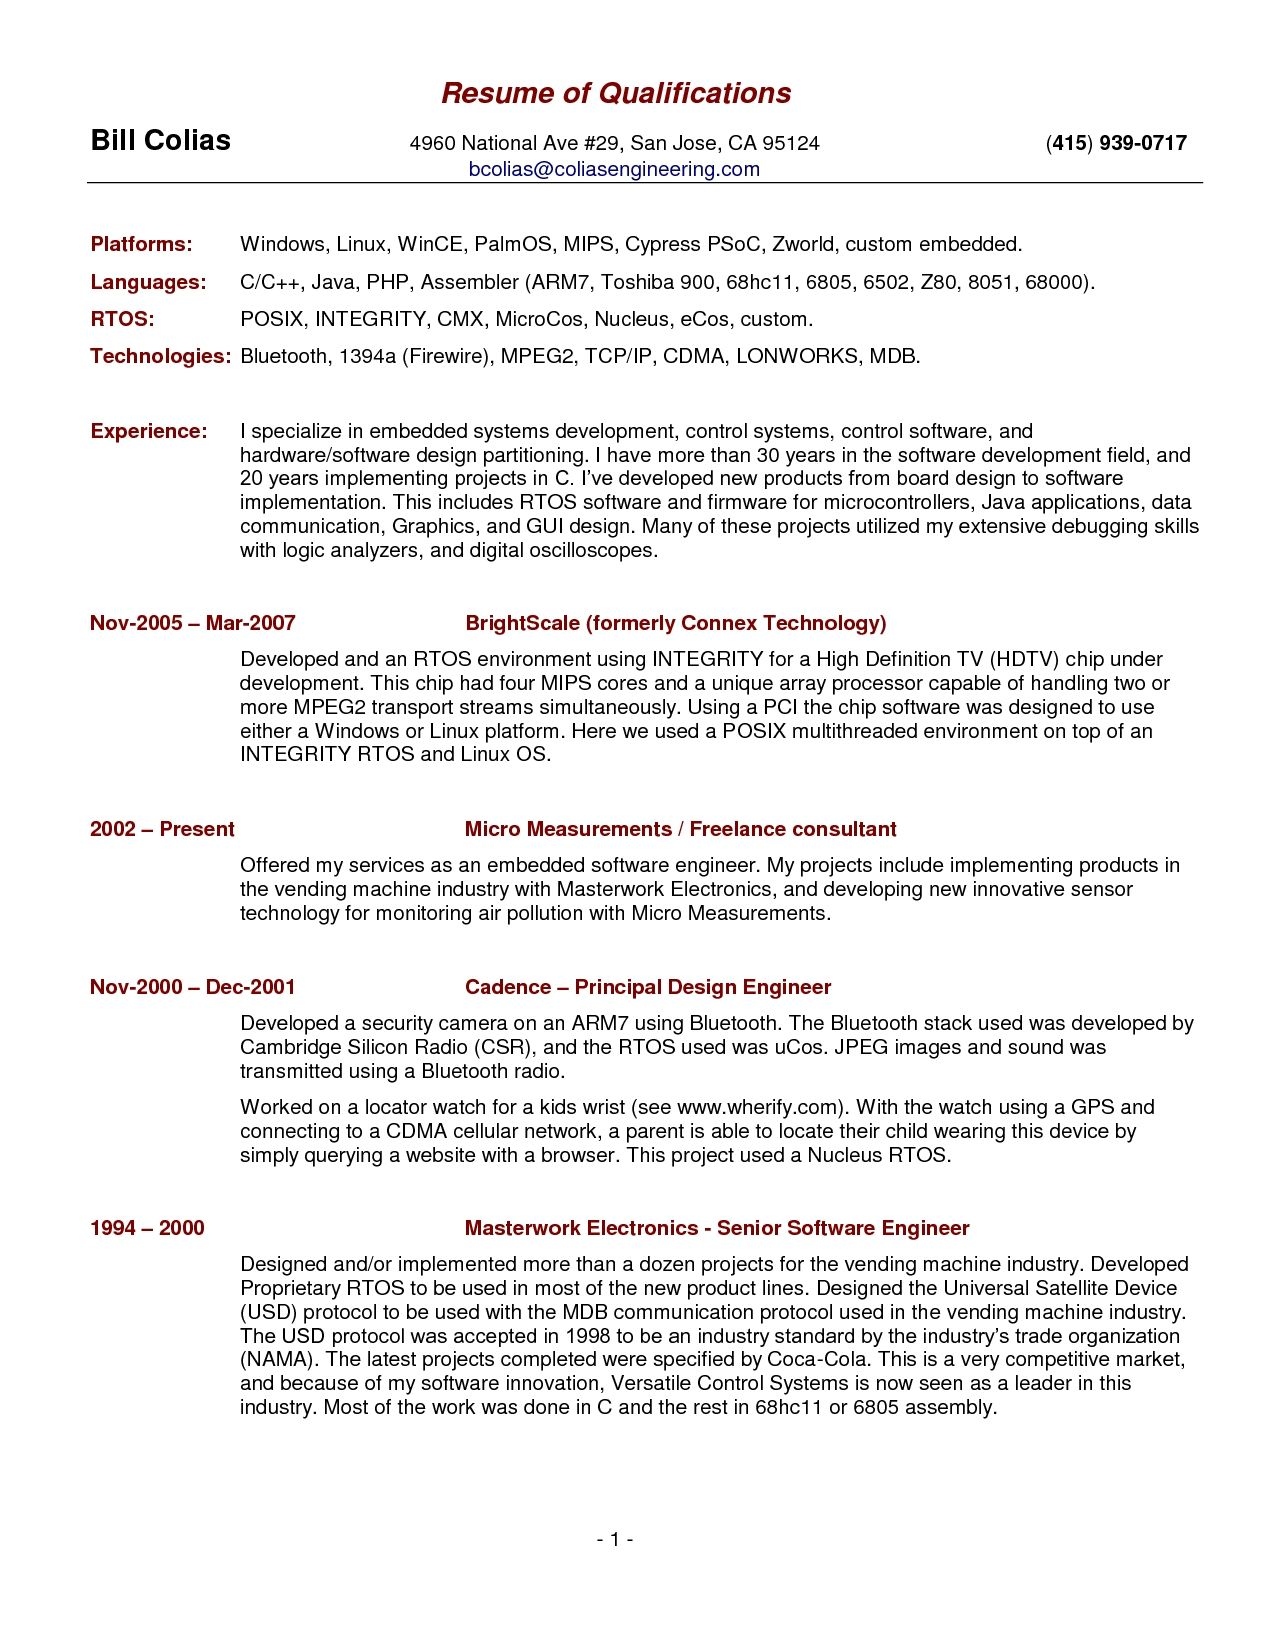 qualifications for a resume examples 7f8ea3a2a new resume skills qualifications for a resume examples 7f8ea3a2a new resume skills and qualifications examples